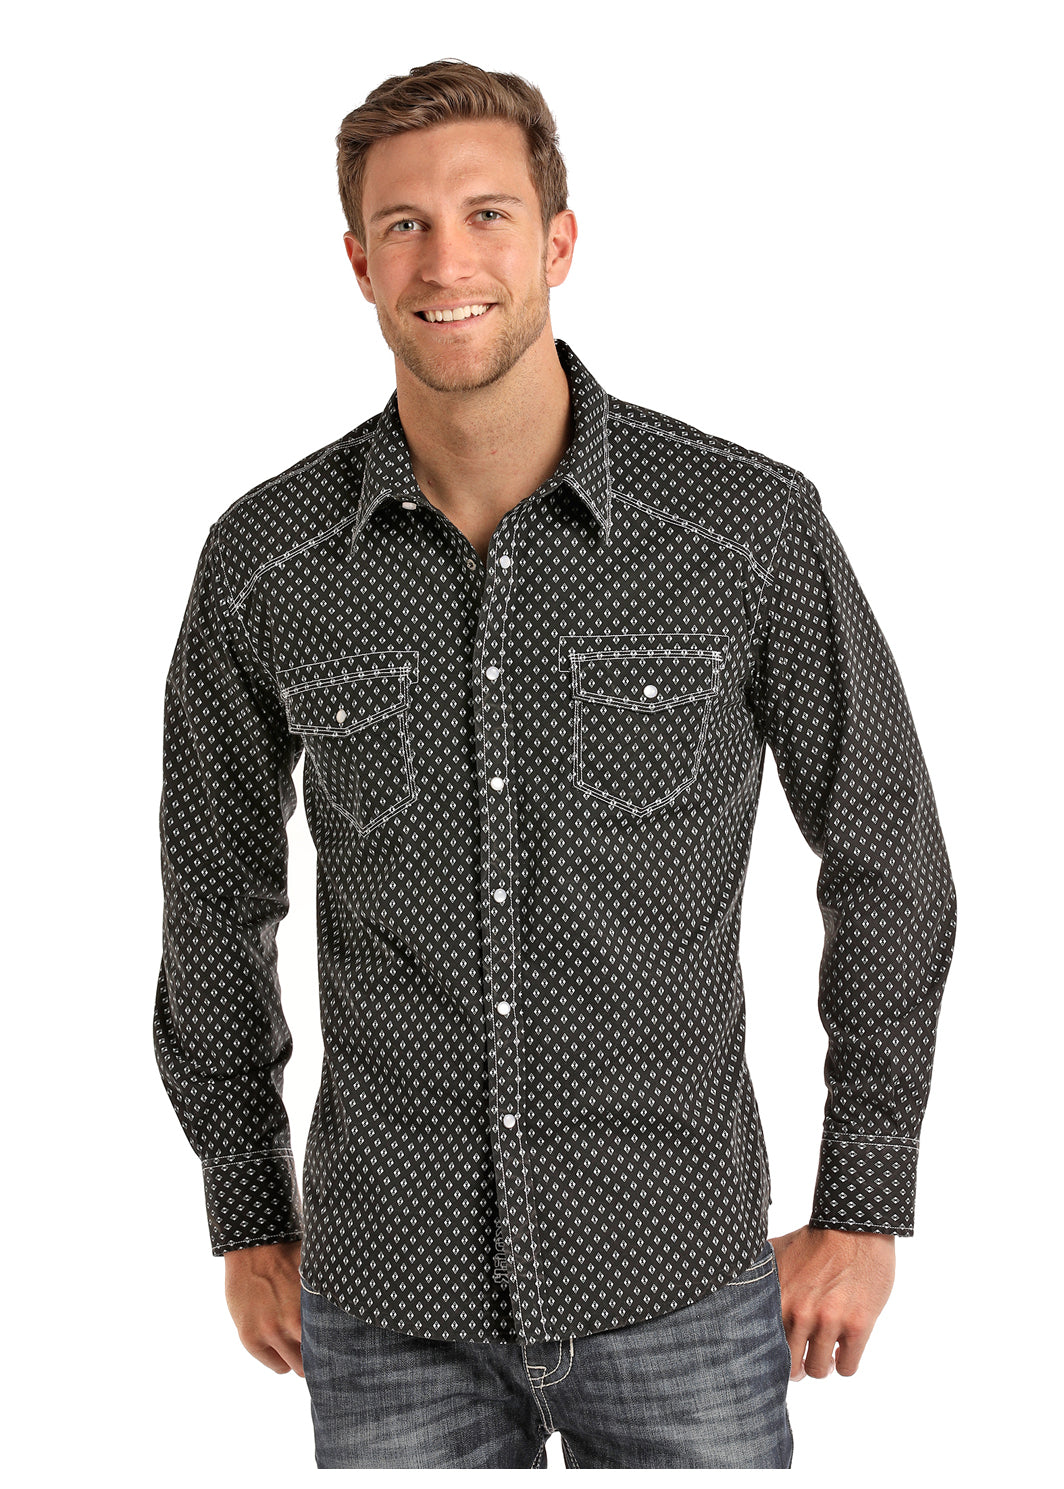 Rock N Roll Black Crinkle Poplin Print Men's Snap Shirt